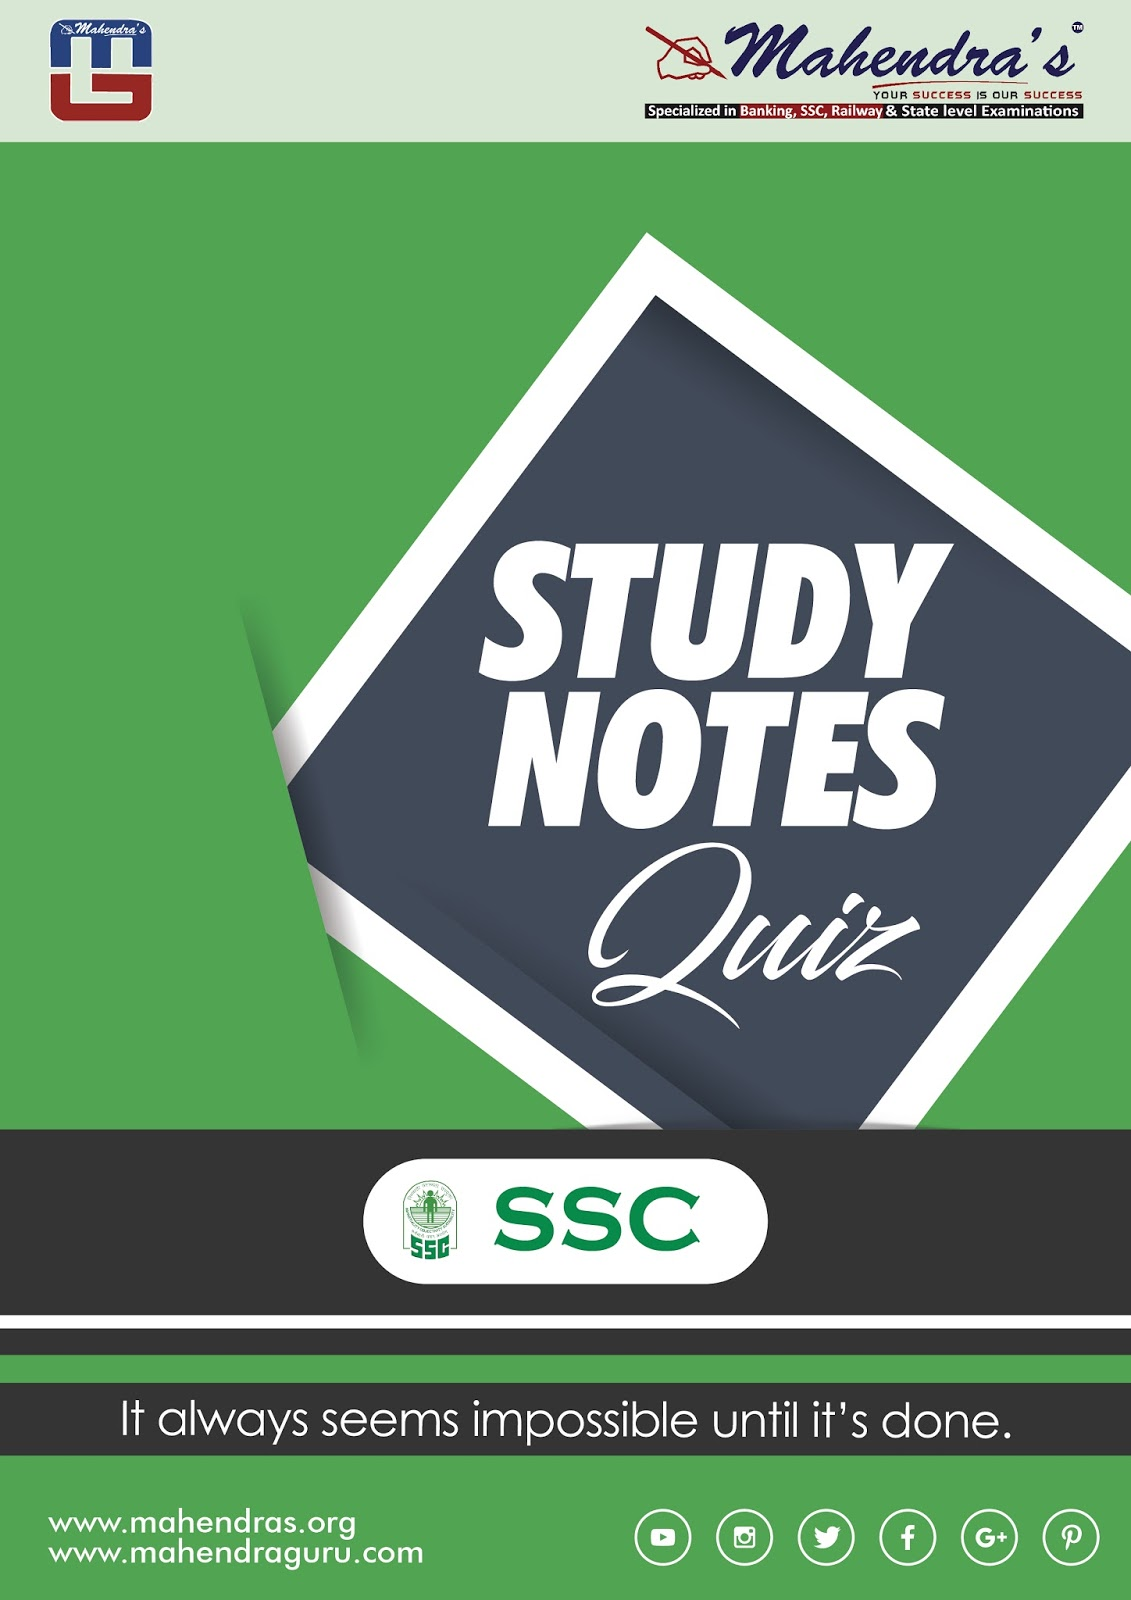 ssc notes Ssc cgl preparation,preparation for ssc exams,ssc multi-tasking,ssc cgl tier-1,ssc cgl tier-ii,crack ssc in 90 days,free ssc coaching stuffs,maths shortcuts for ssc.